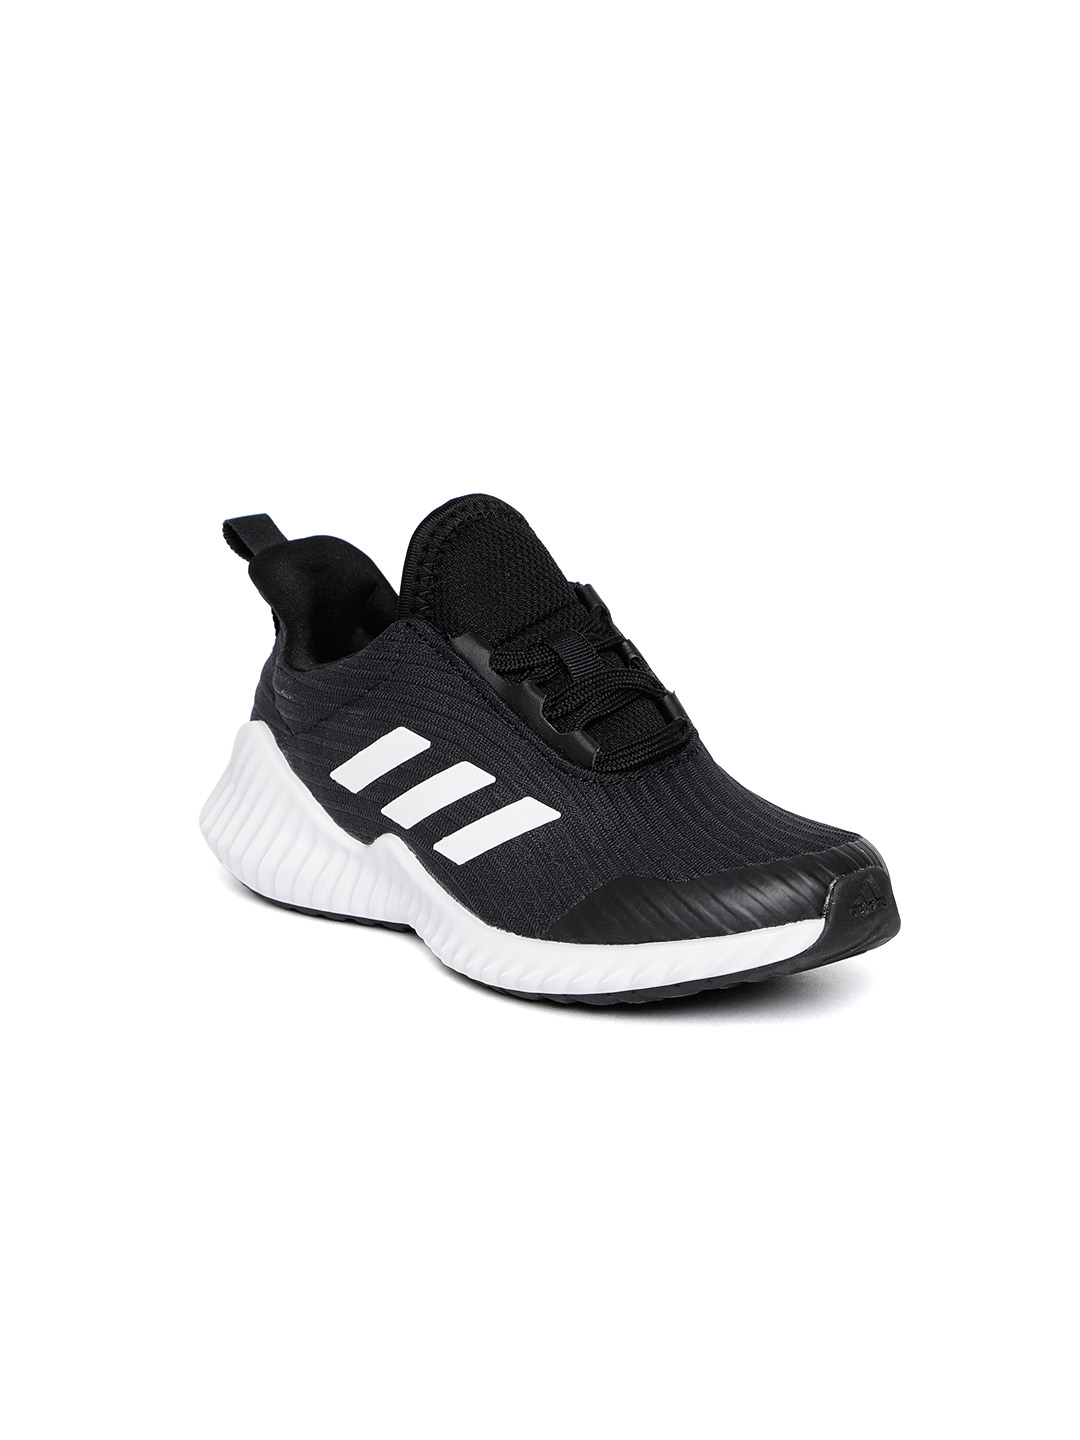 check out 9032a b7eb0 ADIDAS Kids Black Fortarun Self Striped Running Shoes